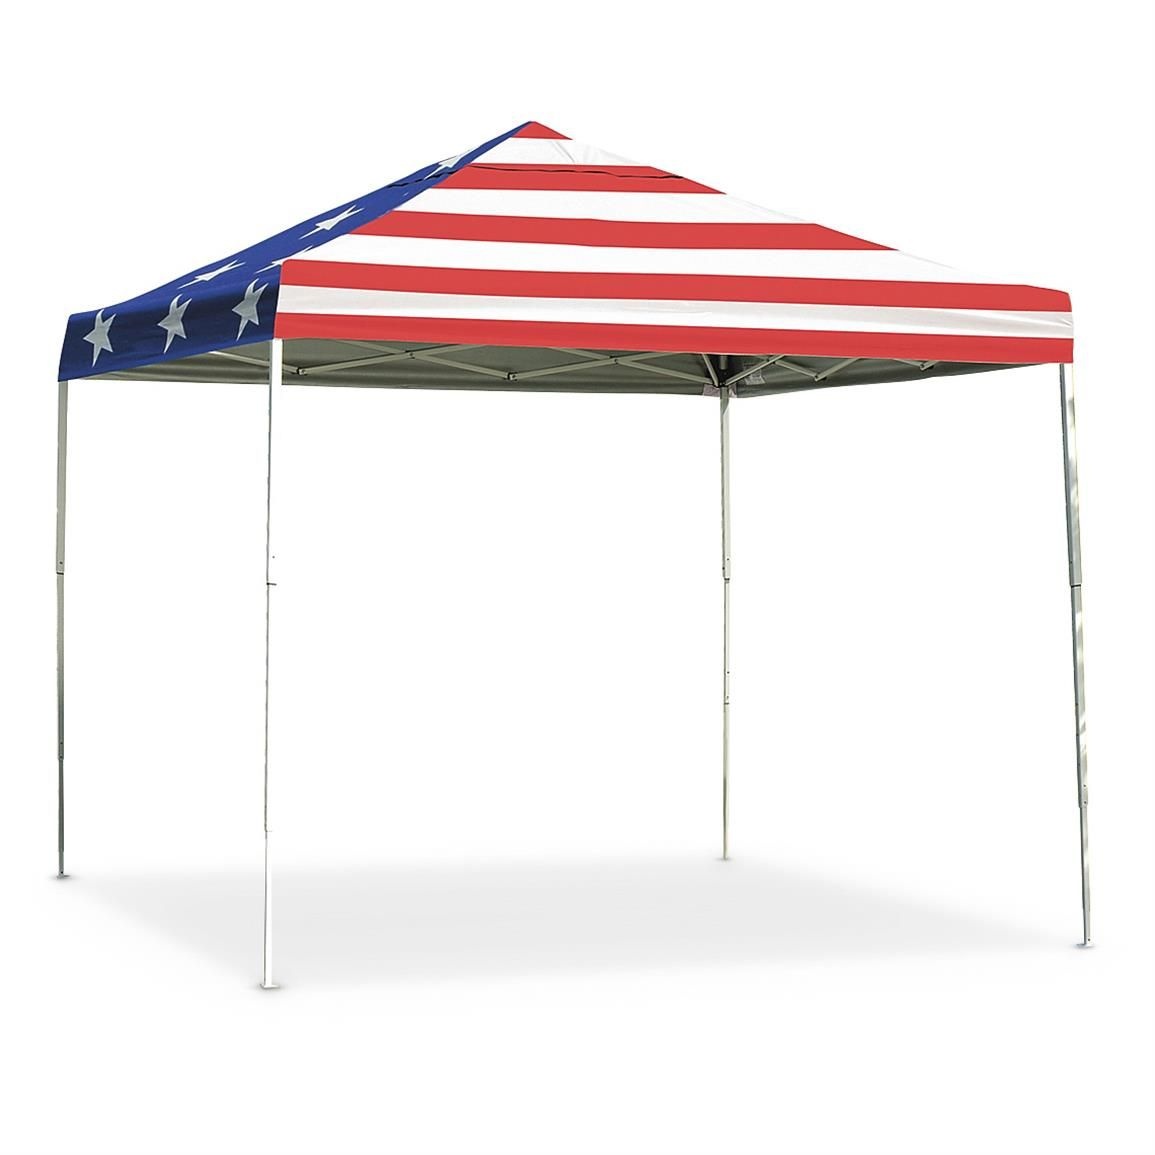 ShelterLogic American Pride Pop-Up Canopy 12u0027 x 12u0027  sc 1 st  Pinterest & ShelterLogic American Pride Pop-Up Canopy 12u0027 x 12u0027 | Products ...